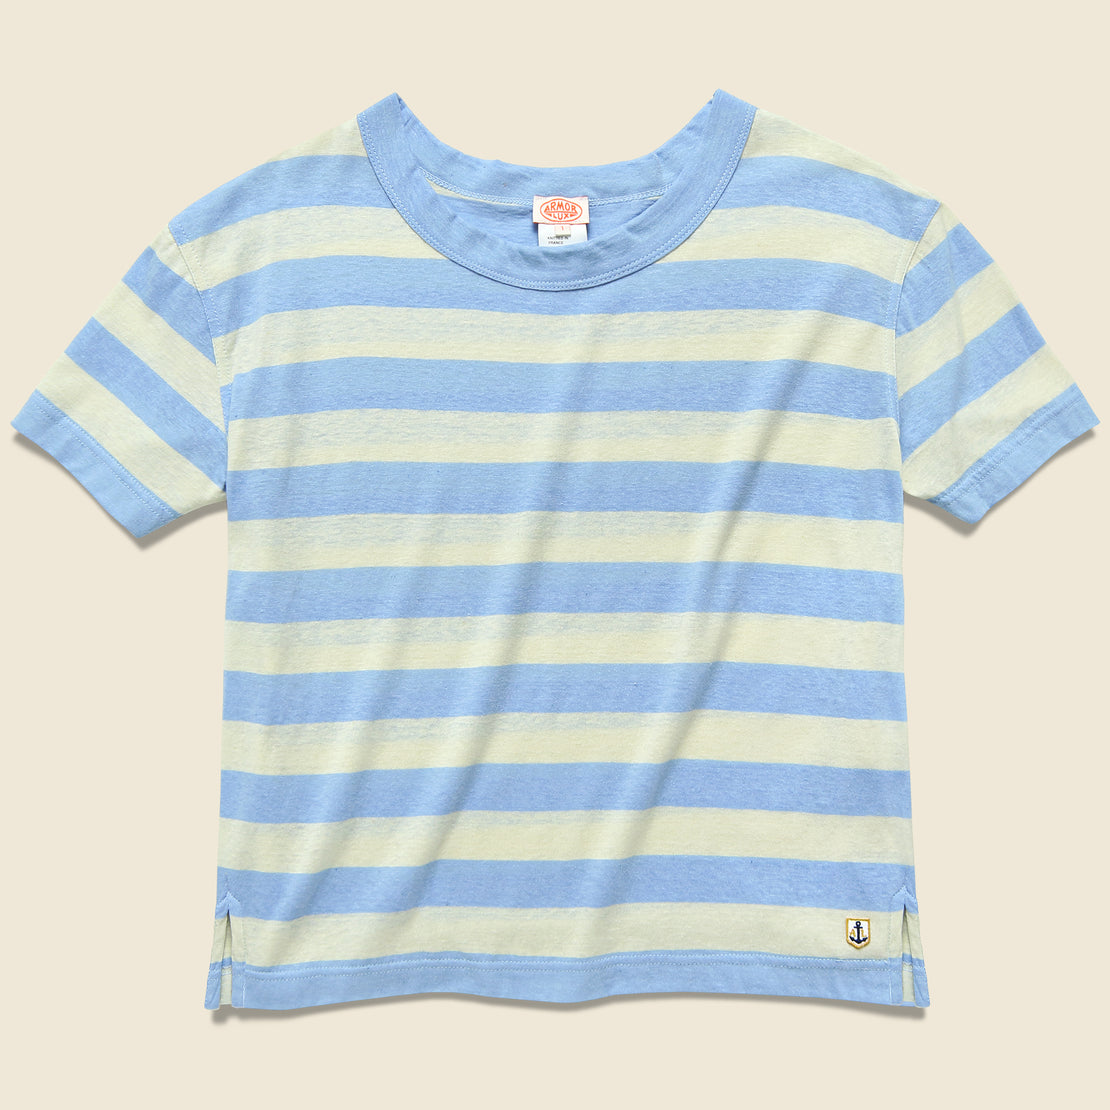 bed00bfd Armor Lux Boxy Cotton/Linen Tee - Natural/Light Blue ...